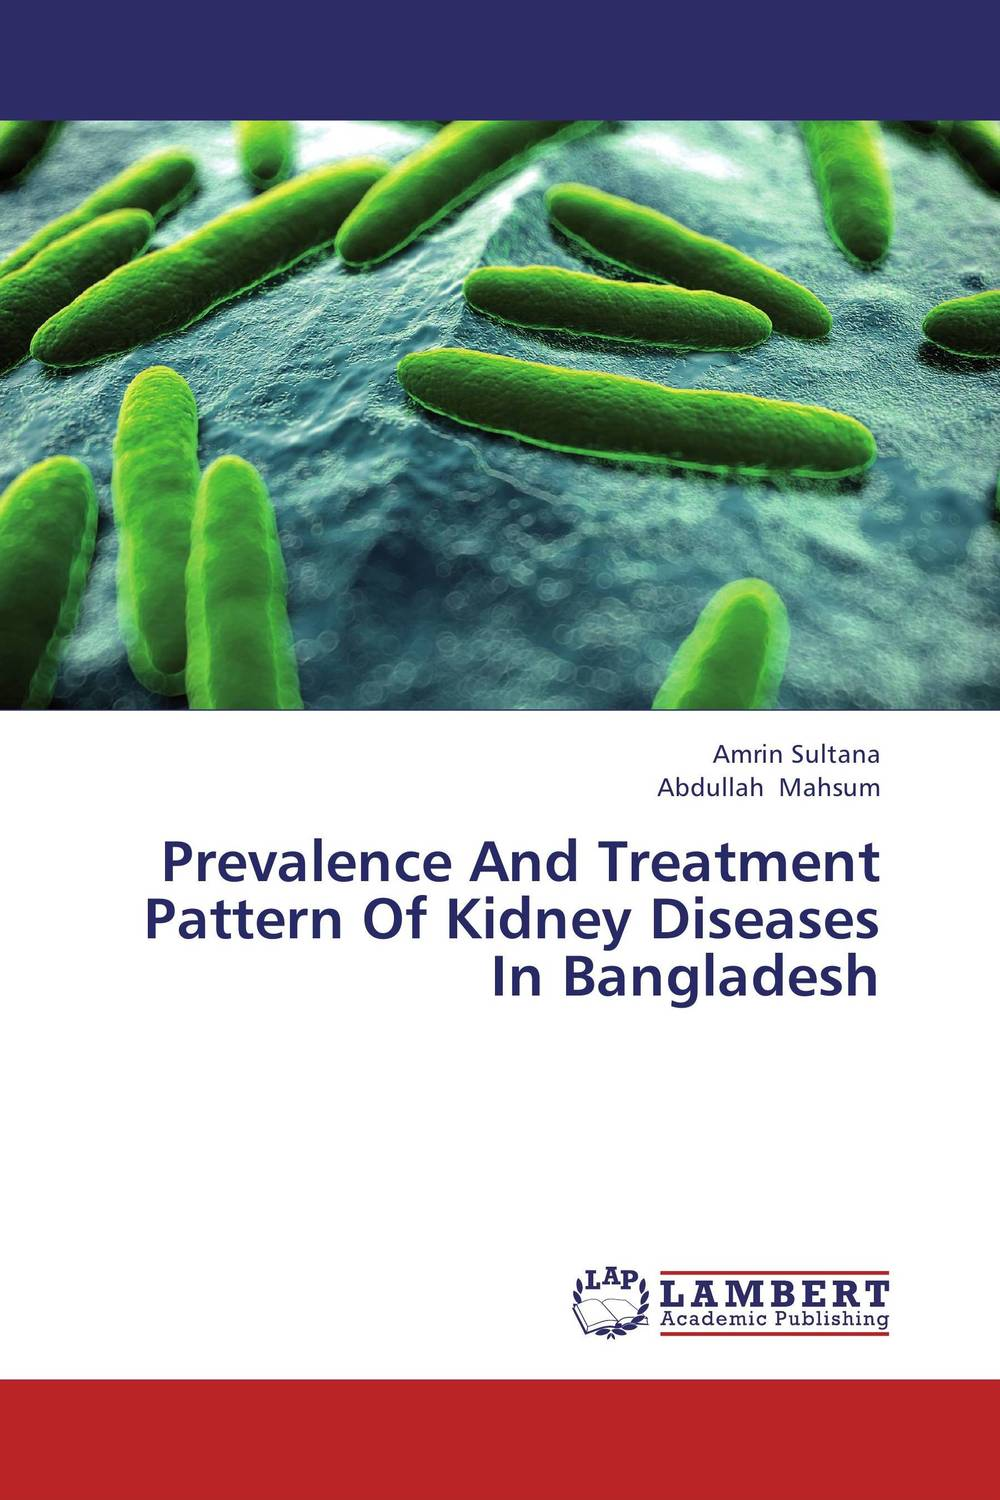 Prevalence And Treatment Pattern Of Kidney Diseases In Bangladesh chronic nonbacterial prostatitis treatment deivce enhance renal function treatment watch for diabetic type b muscle stimulator